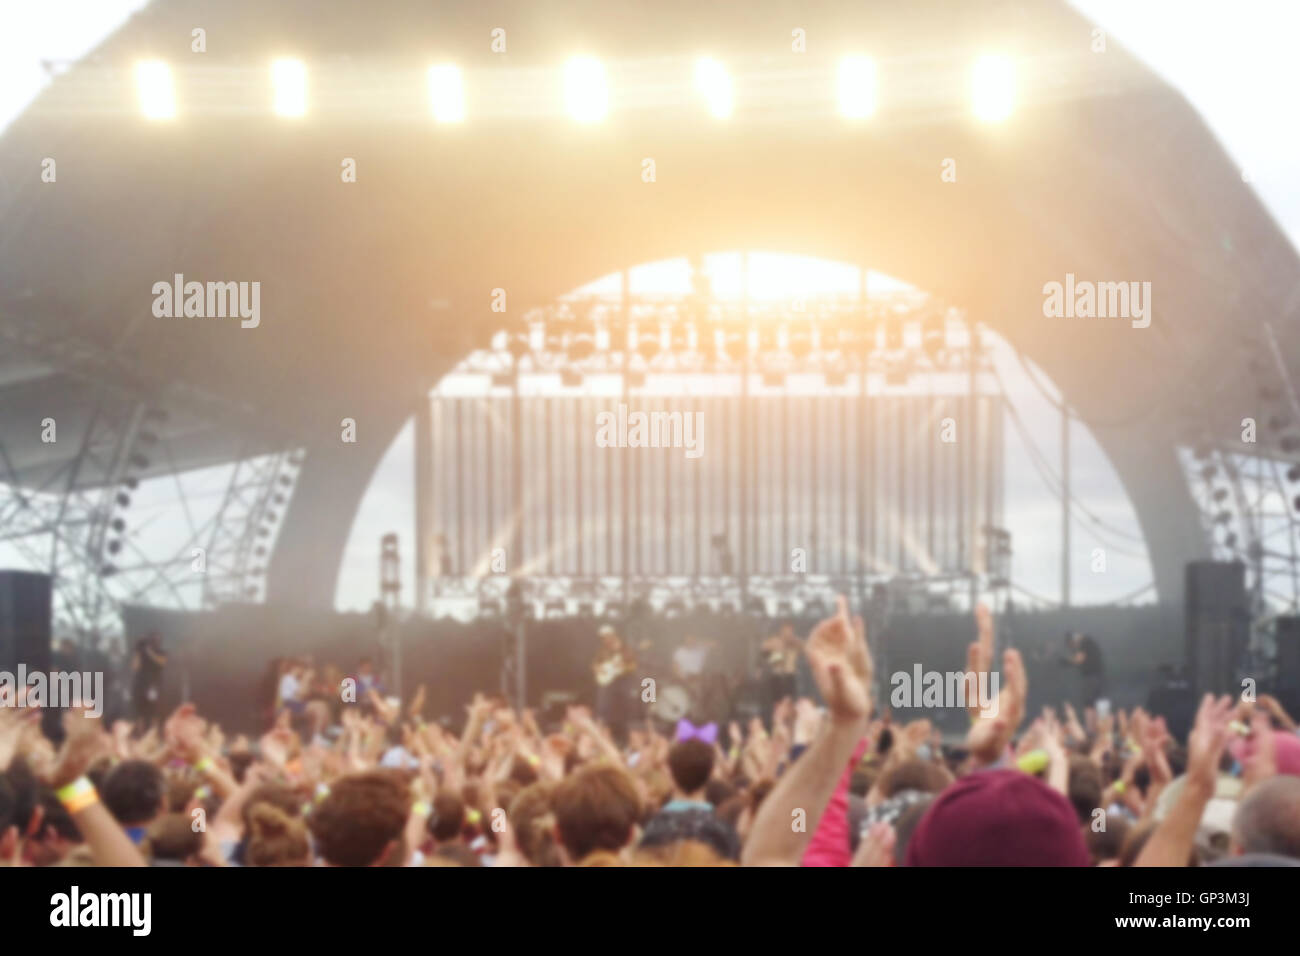 open air festival concert blurred background - Stock Image